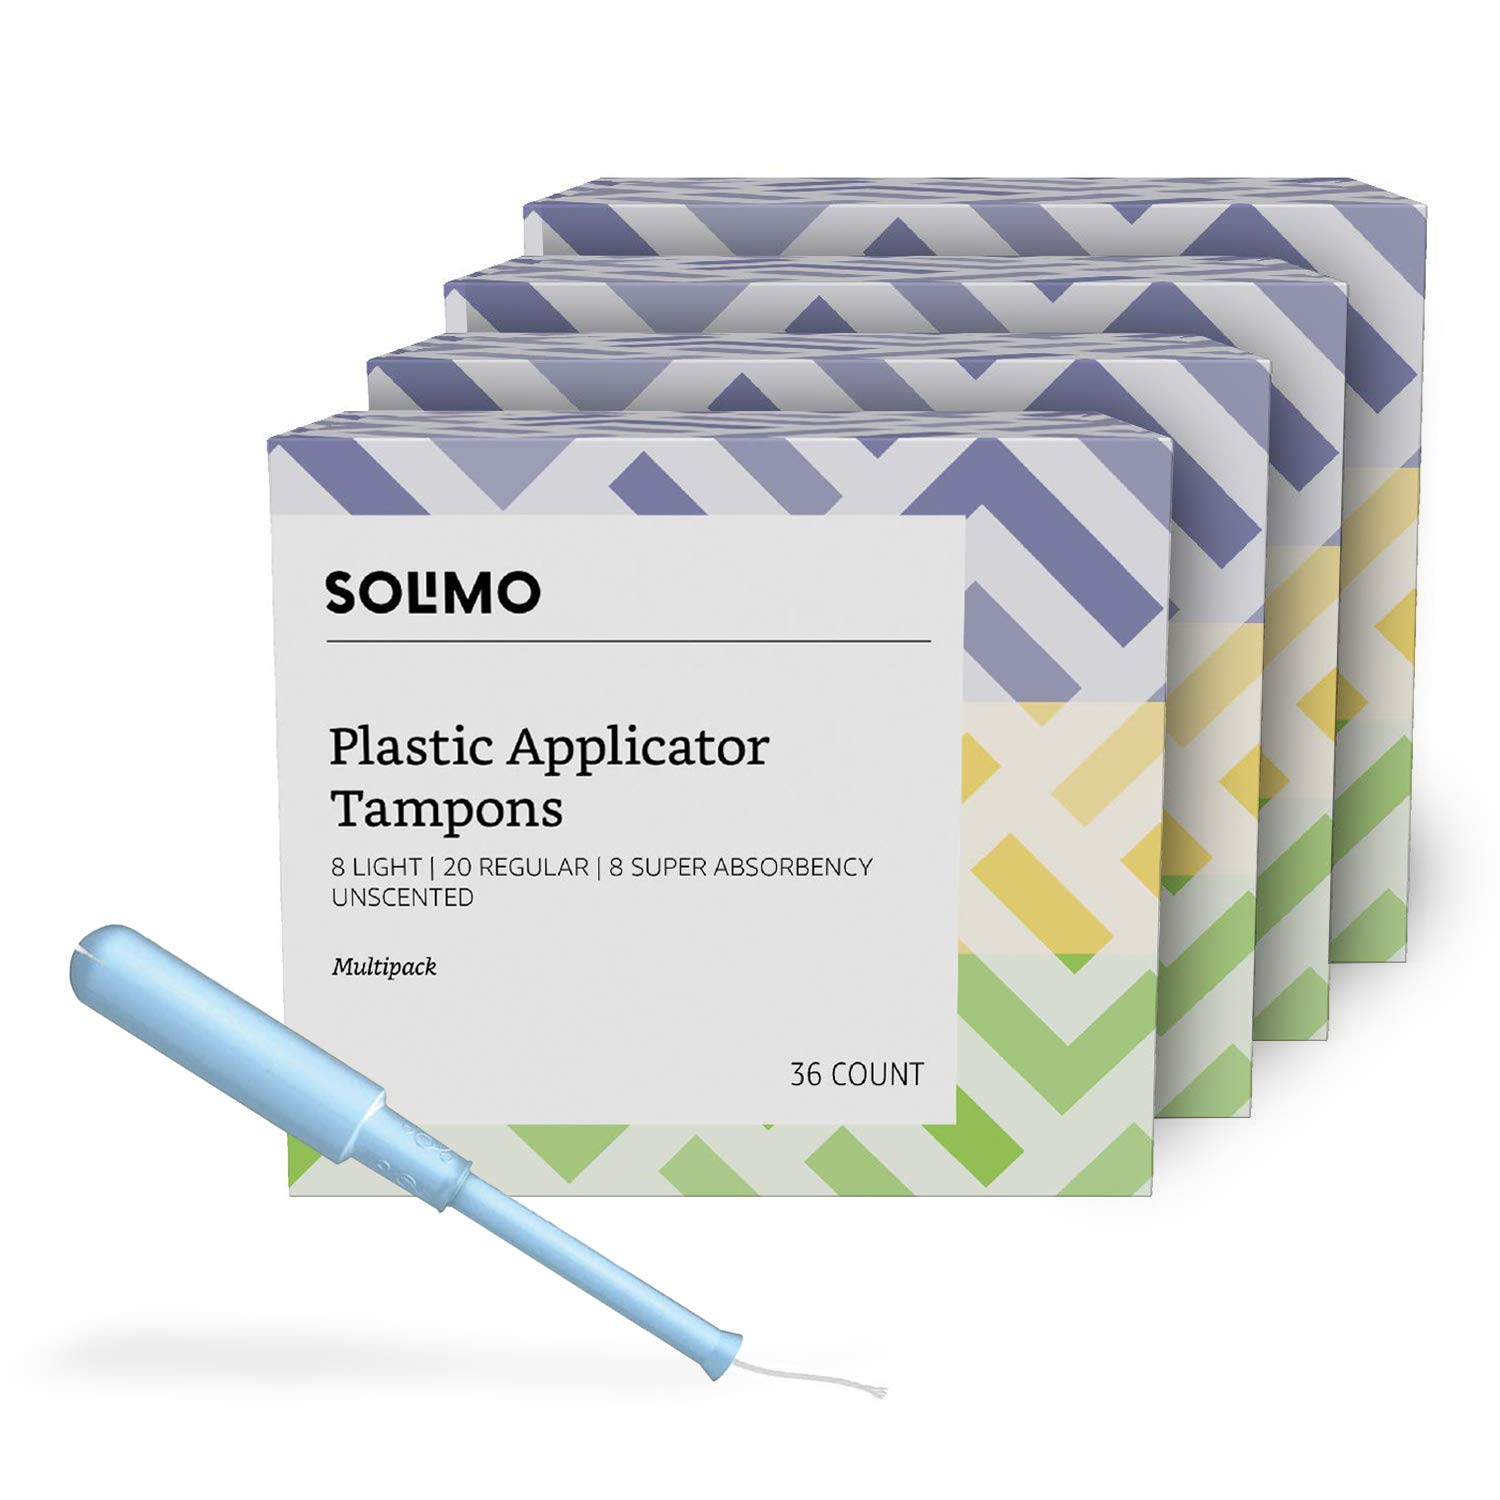 Amazon Brand - Solimo Plastic Applicator Tampons, Light Absorbency Multipack, Light/Regular/Super Absorbency, Unscented, 144 Count (4 packs of 36) by Solimo